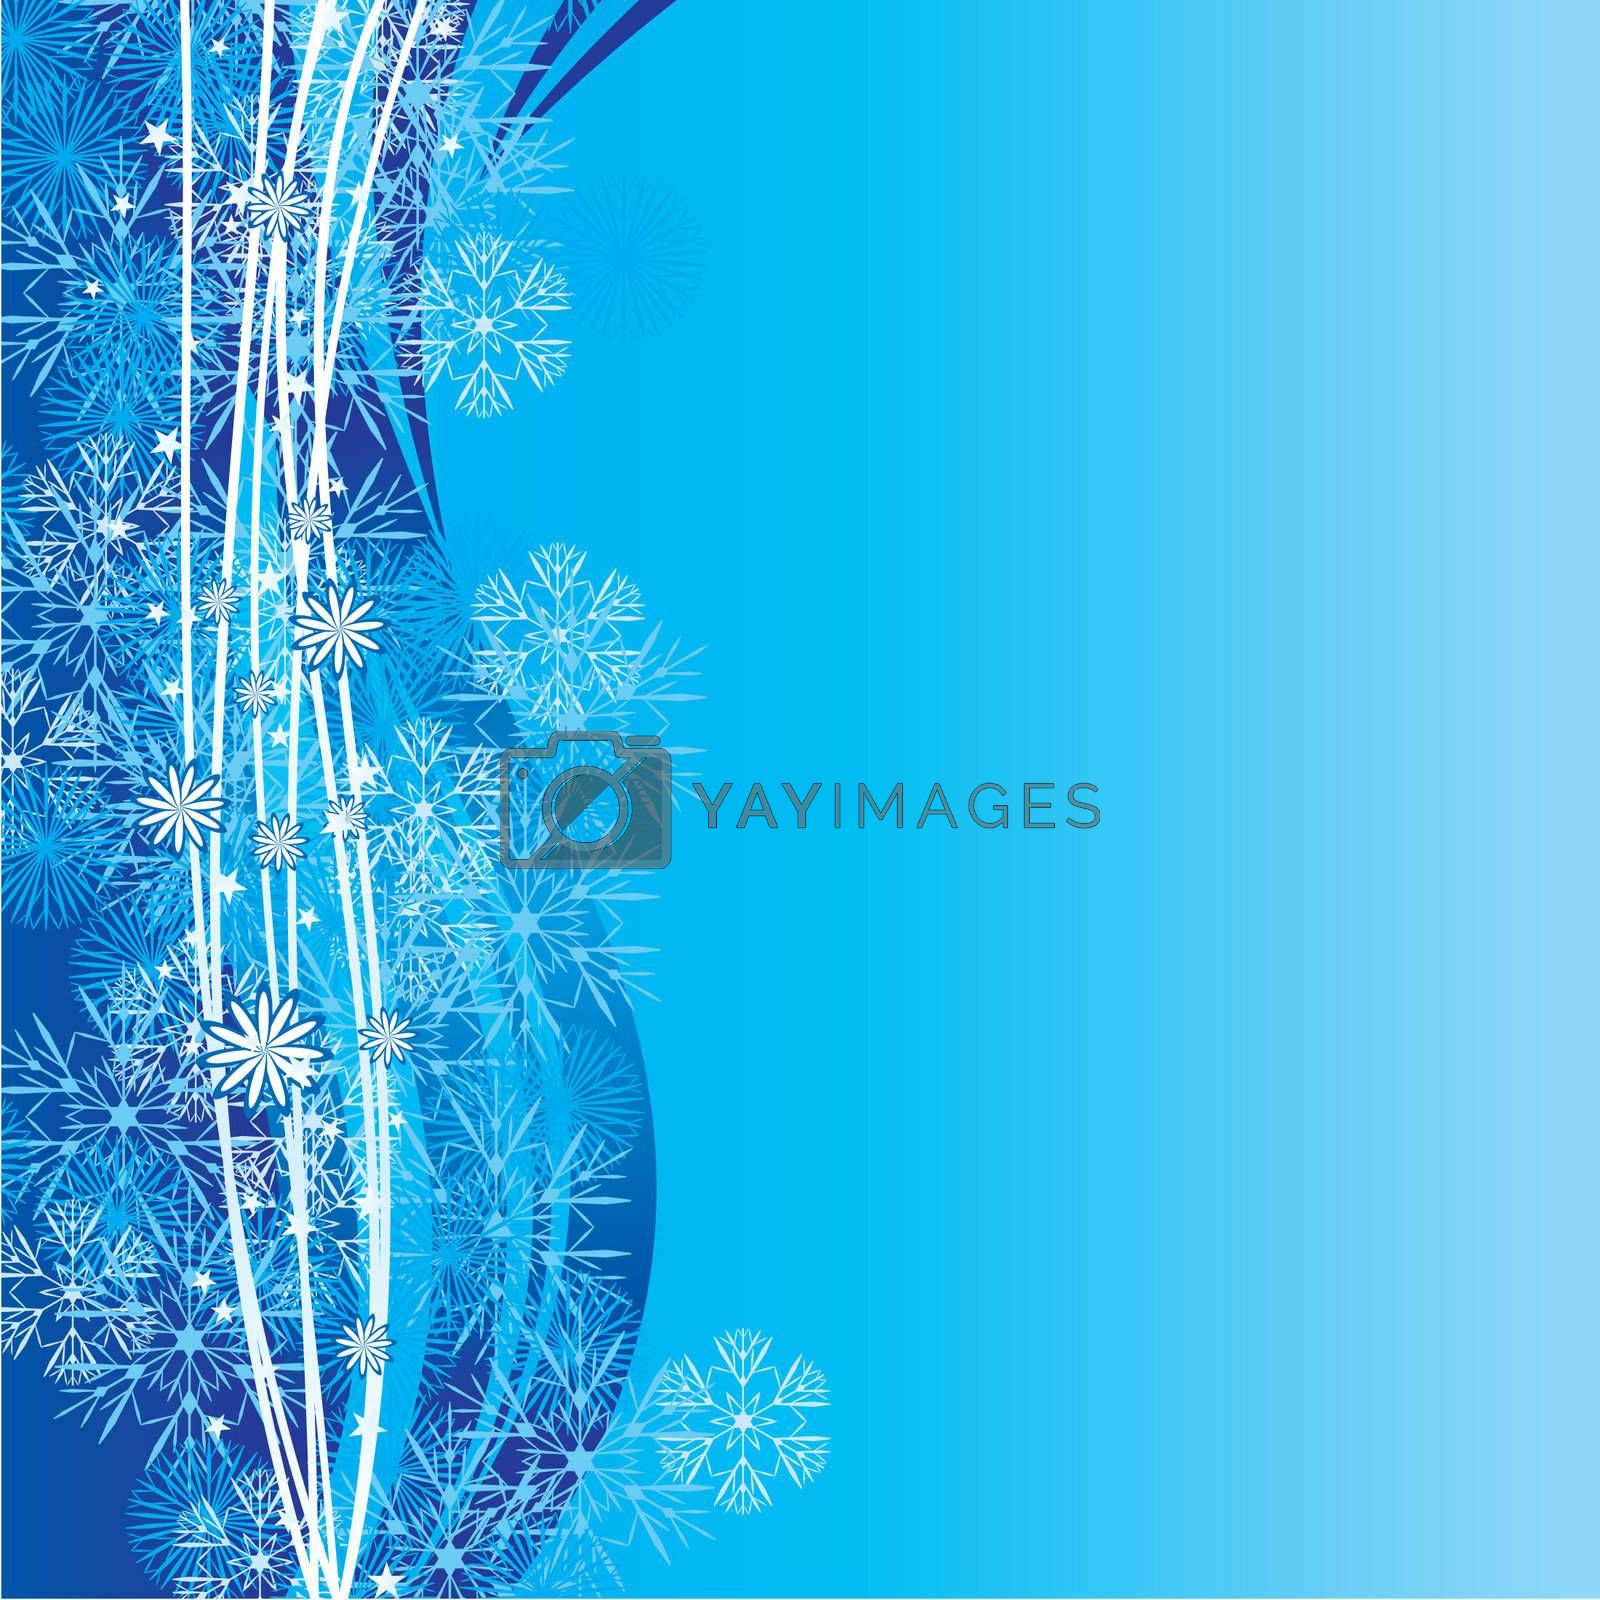 blue cyan snowflakes background